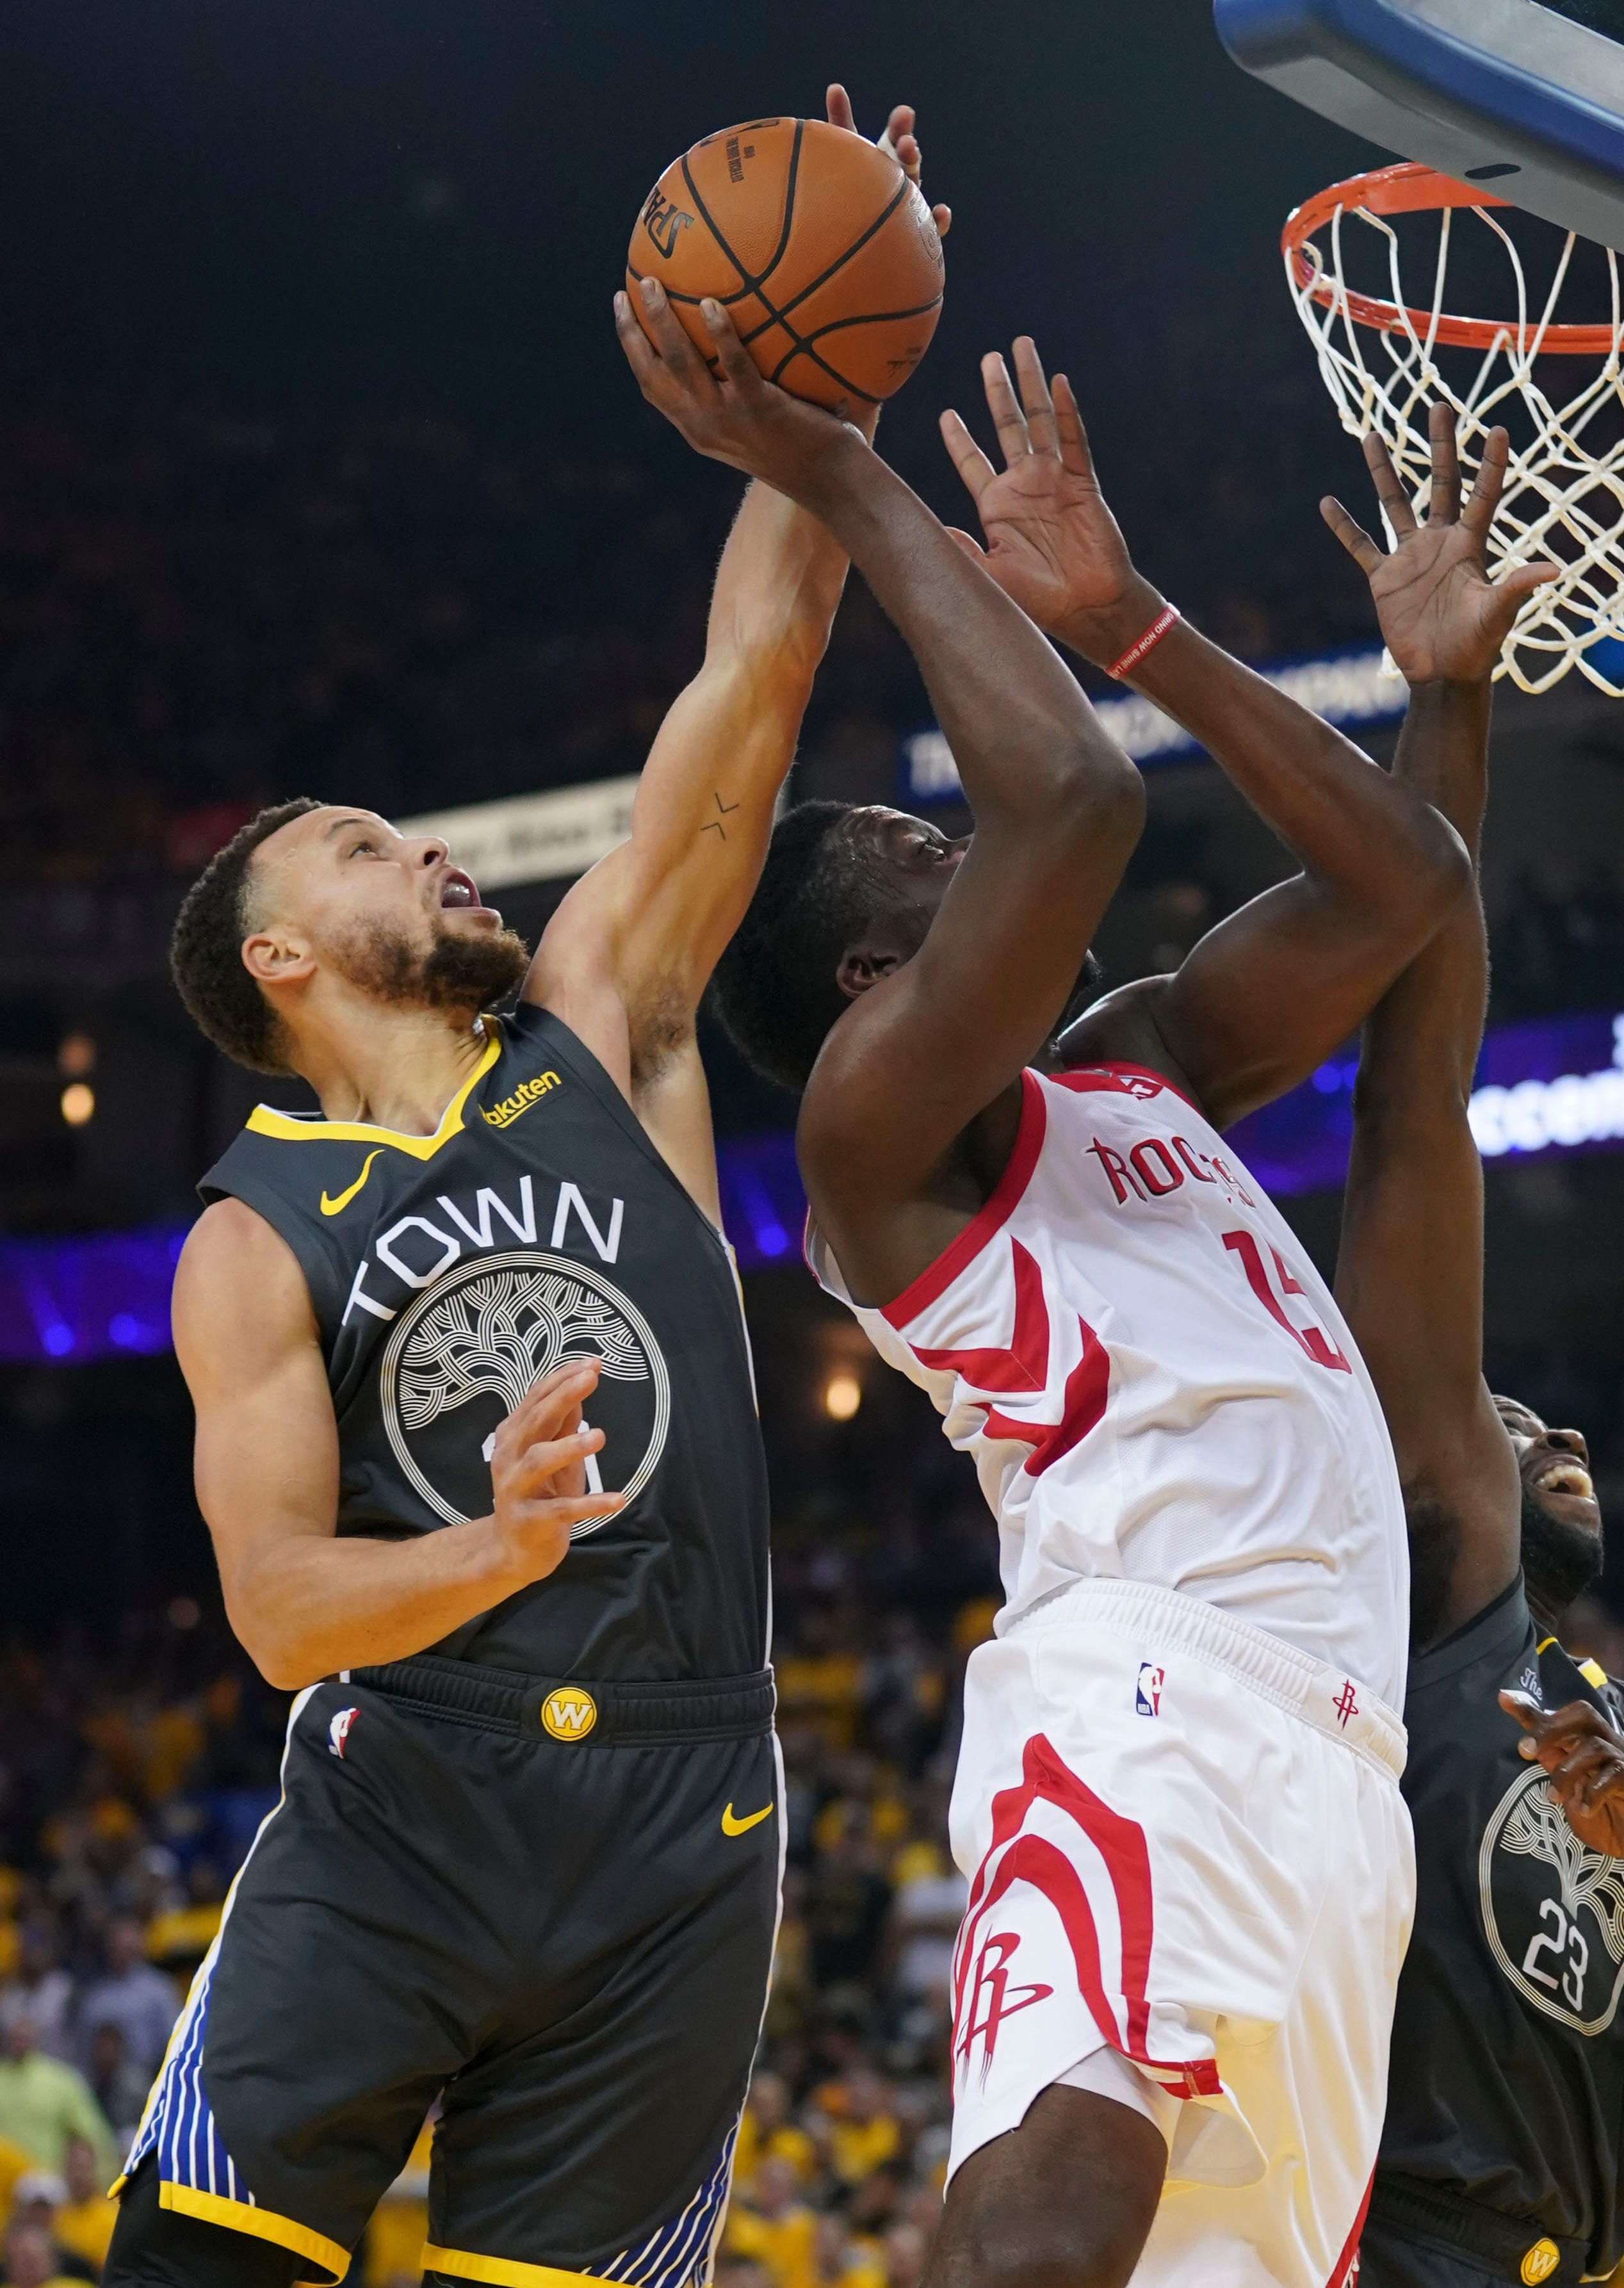 April 30: The Golden State Warriors' Stephen Curry blocks the shot of Houston Rockets center Clint Capela during the second quarter in Game 2.